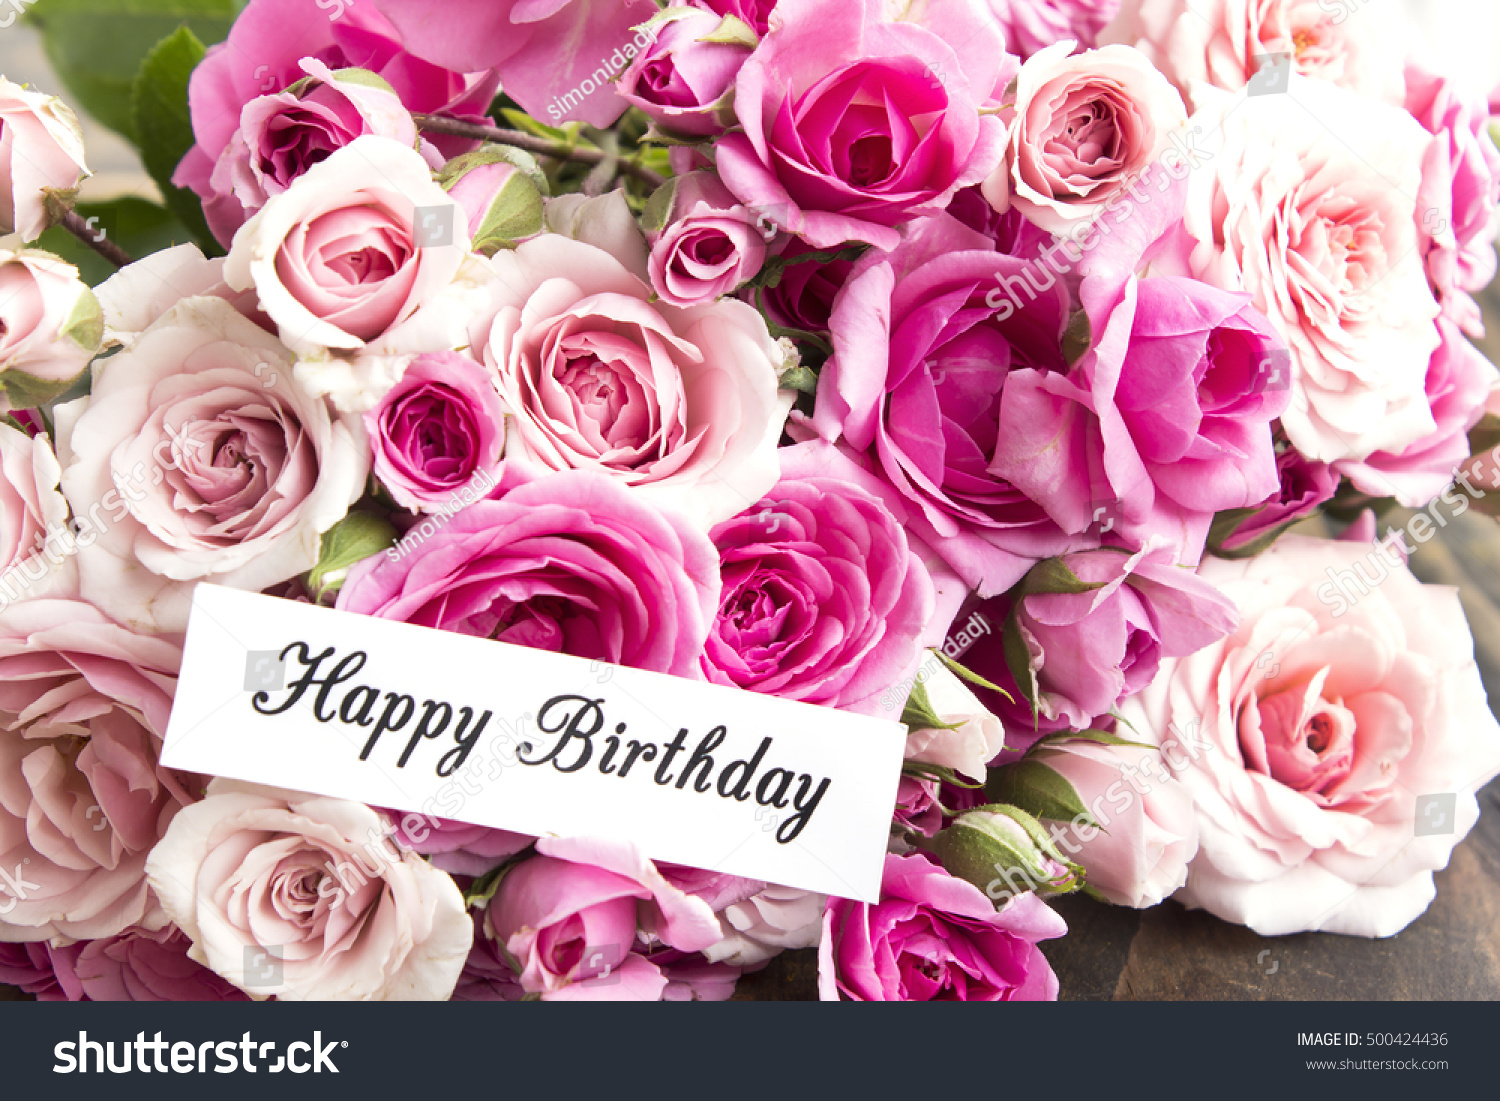 Happy Birthday Card Bouquet Pink Roses Stock Photo (Royalty Free ...